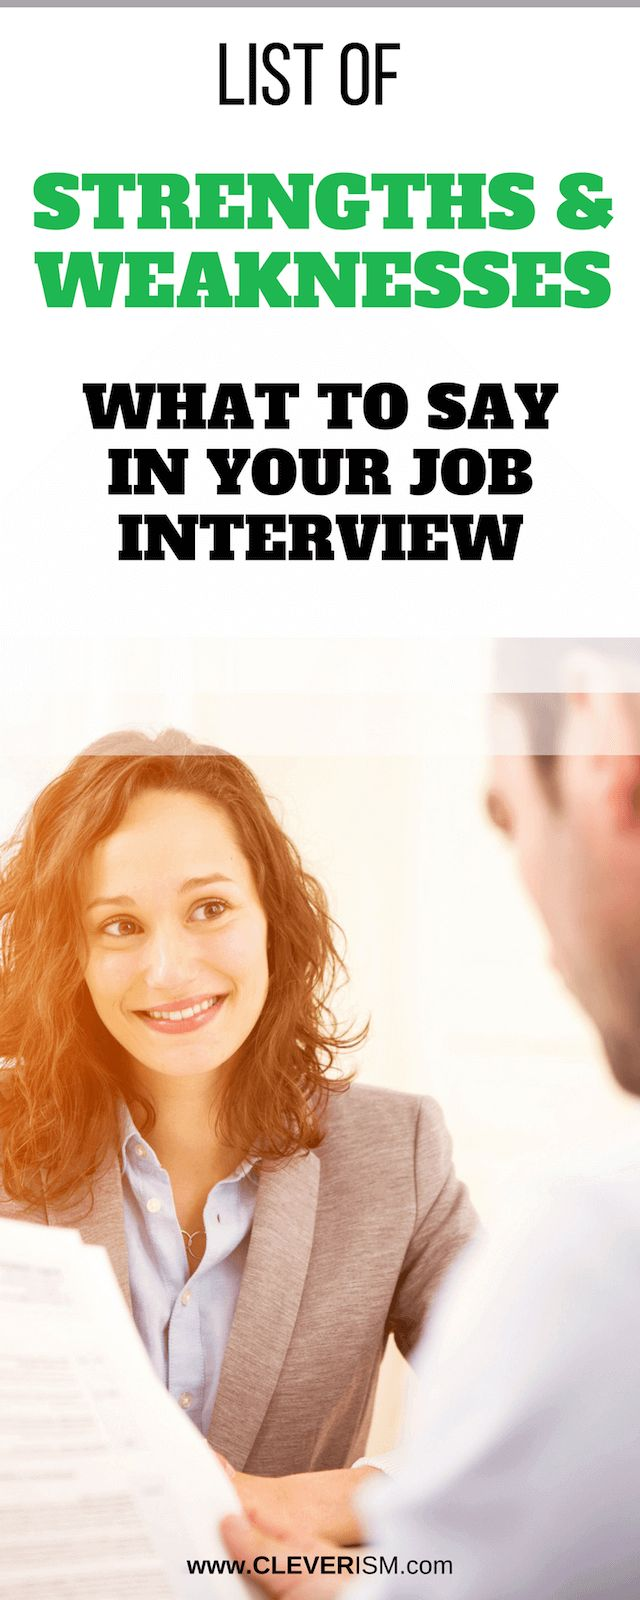 Here's the definitive guide on effectively presenting your strengths and weaknesses in a job interview, so that hiring managers will hire you.